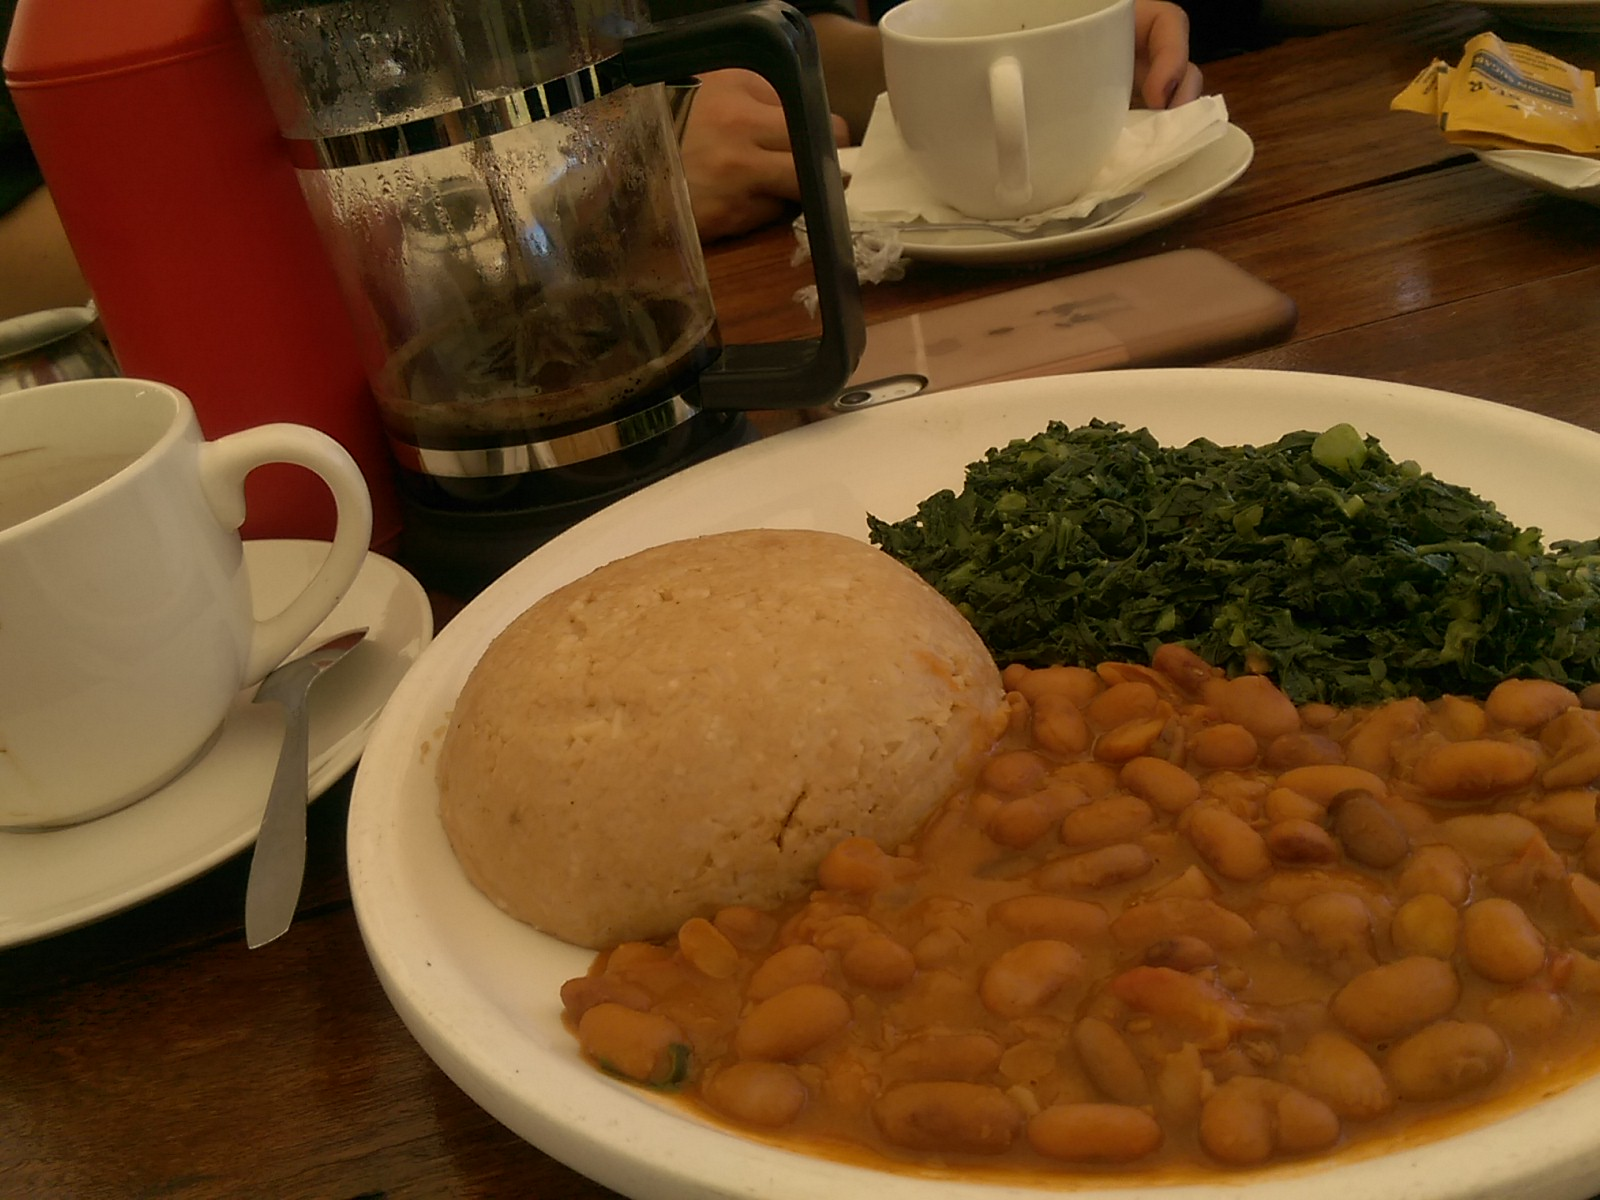 A plate with a round ball of rice beside beans and a pile of greens, French press in the background